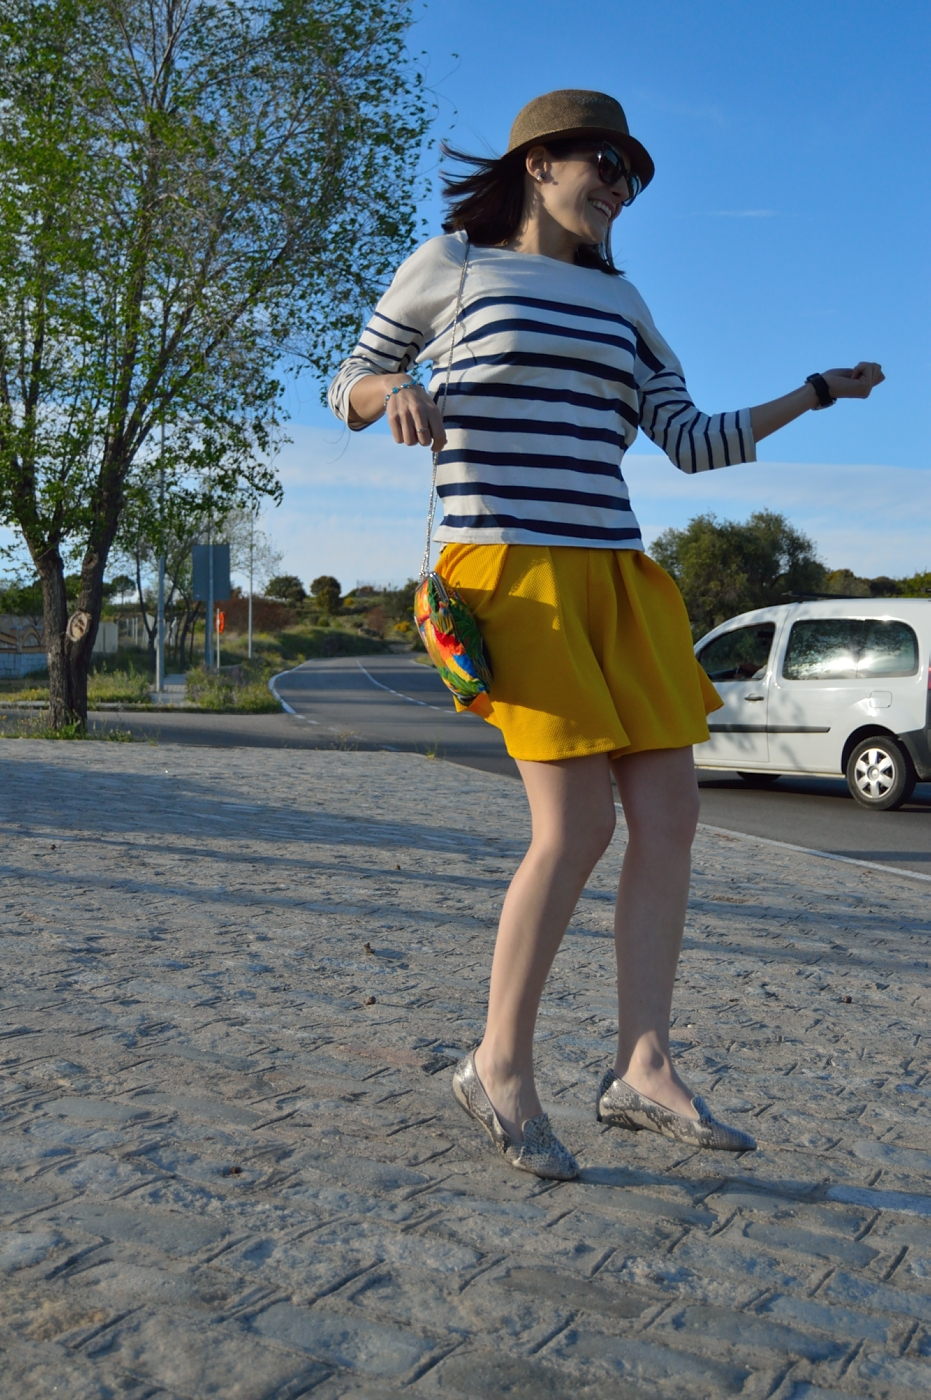 lara-vazquez-mad-lula-style-fashion-blog-girl-stripes-spring-ywllow-shorts